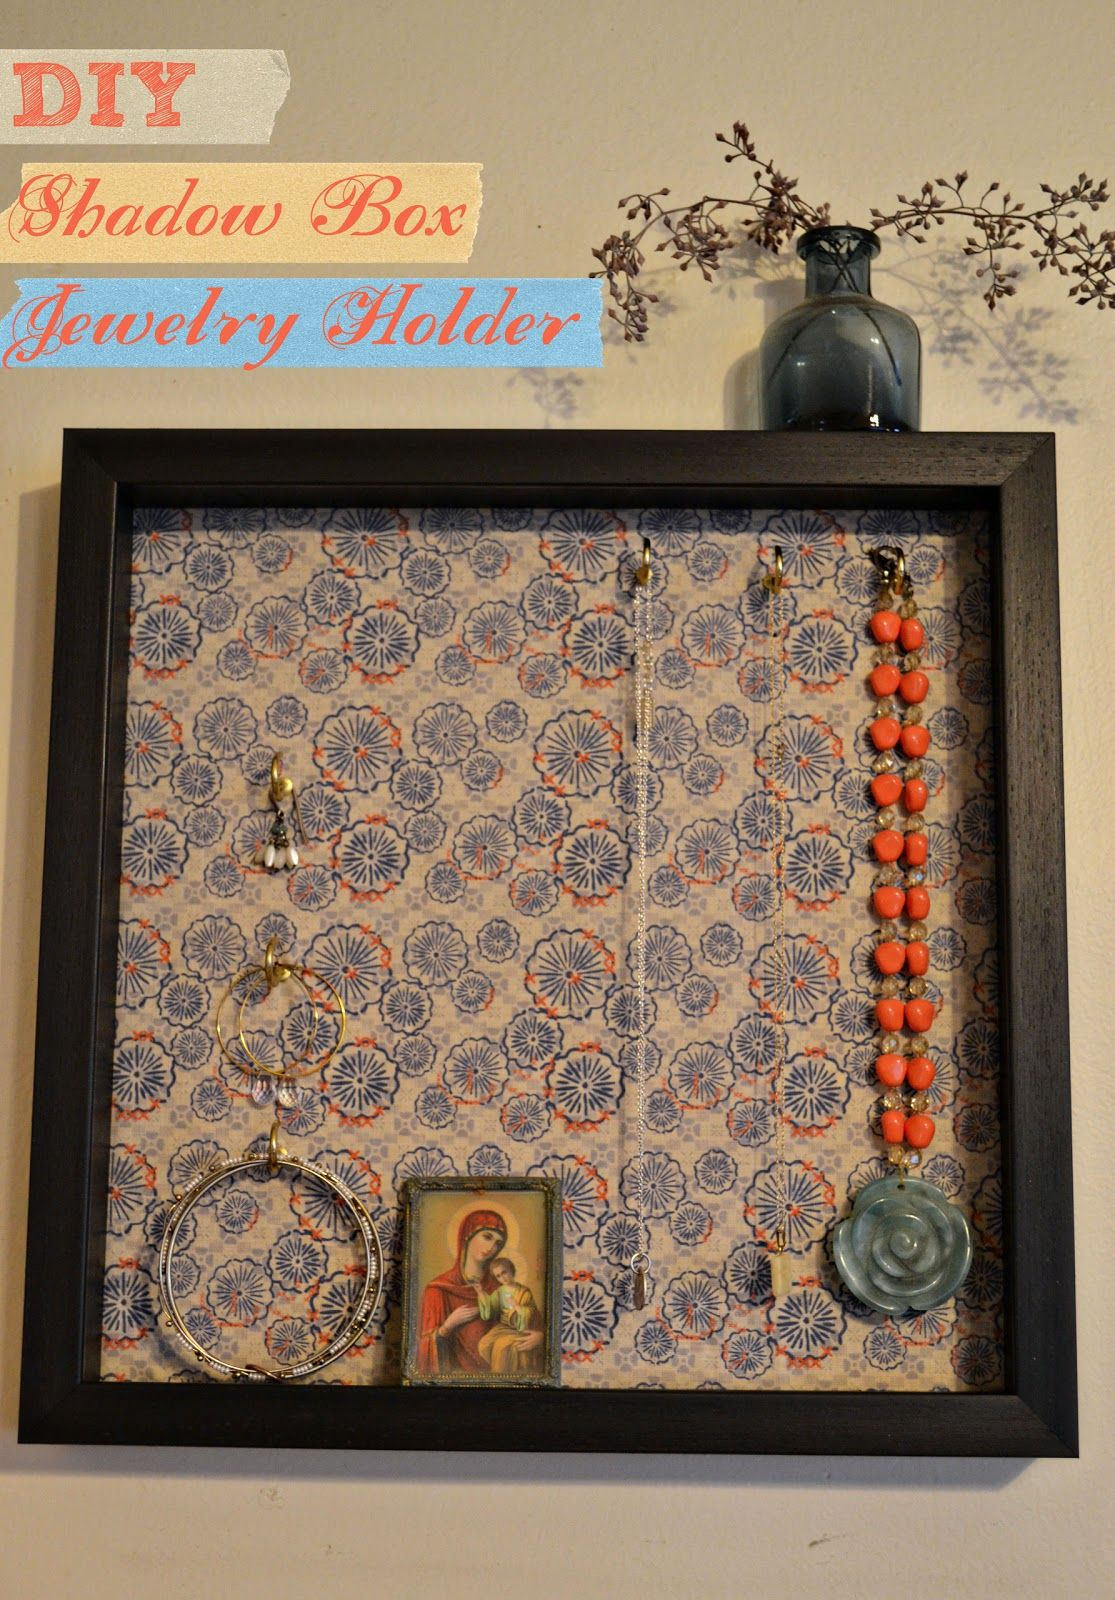 How To Decorate A Shadow Box Simple Shadow Box Ideas To Keep Your Memories And How To Make It  Shadow Design Decoration